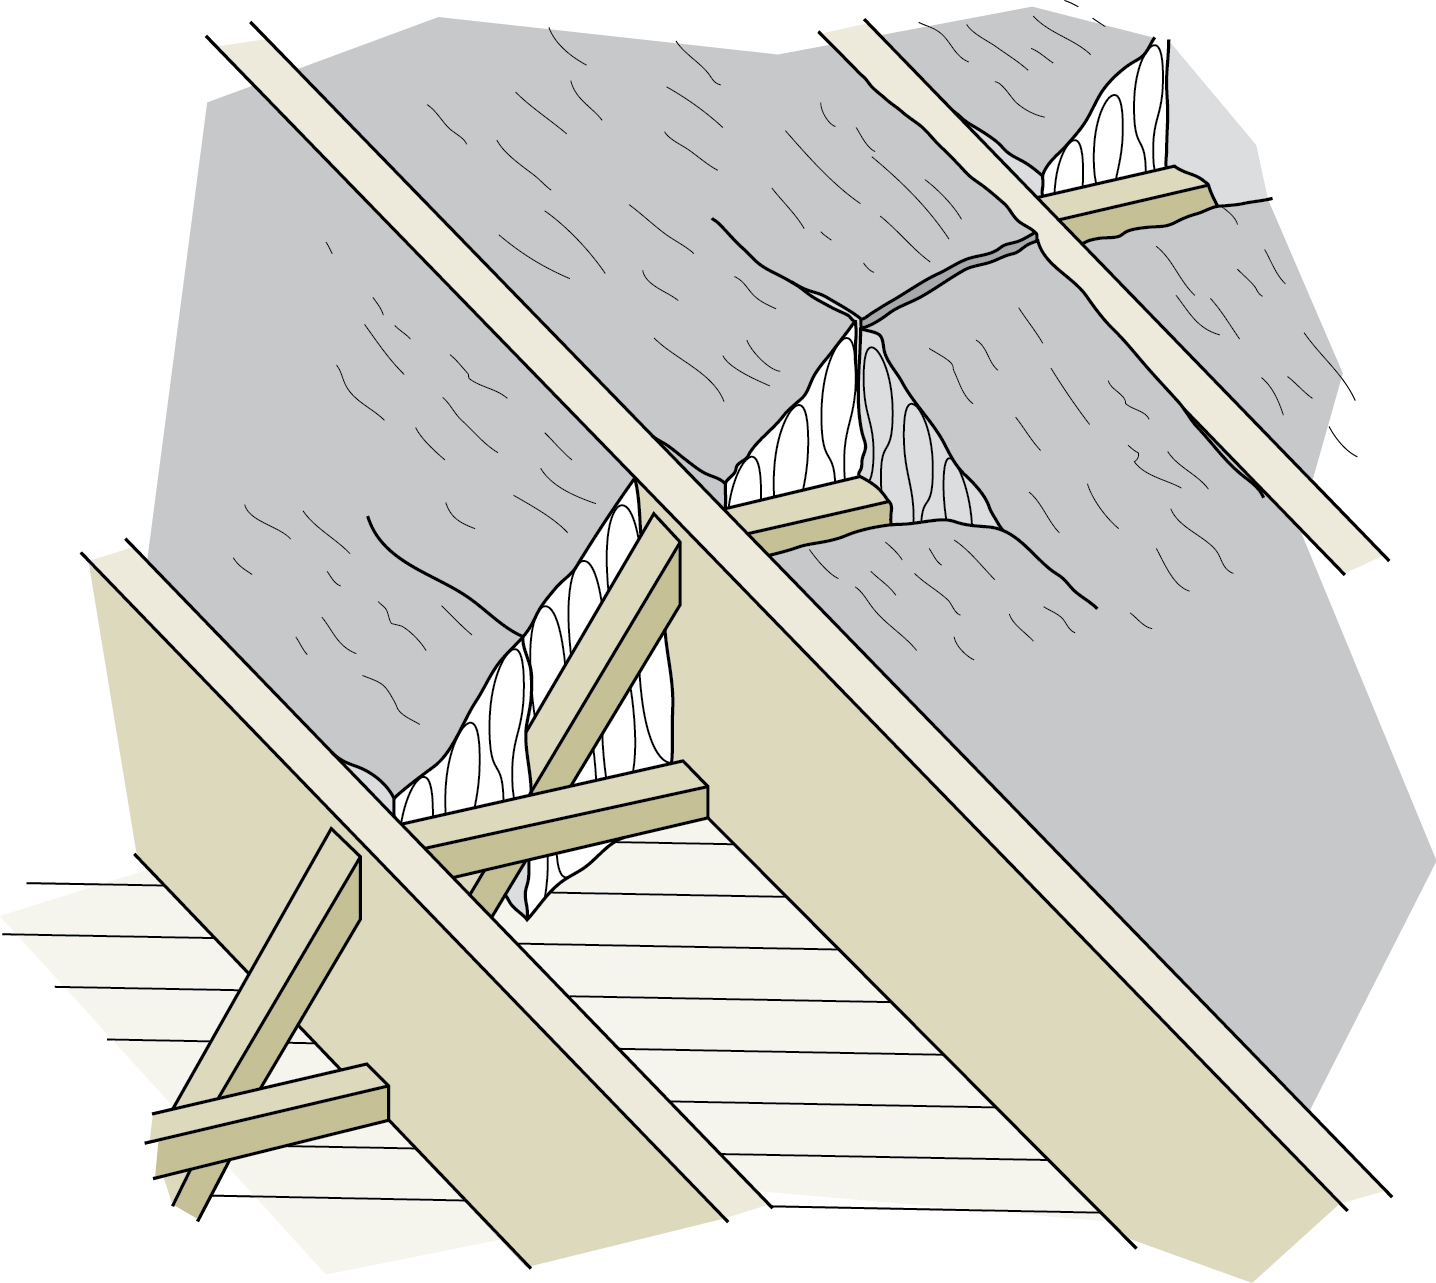 Figure 5-12 Fitting insulation around cross bracing